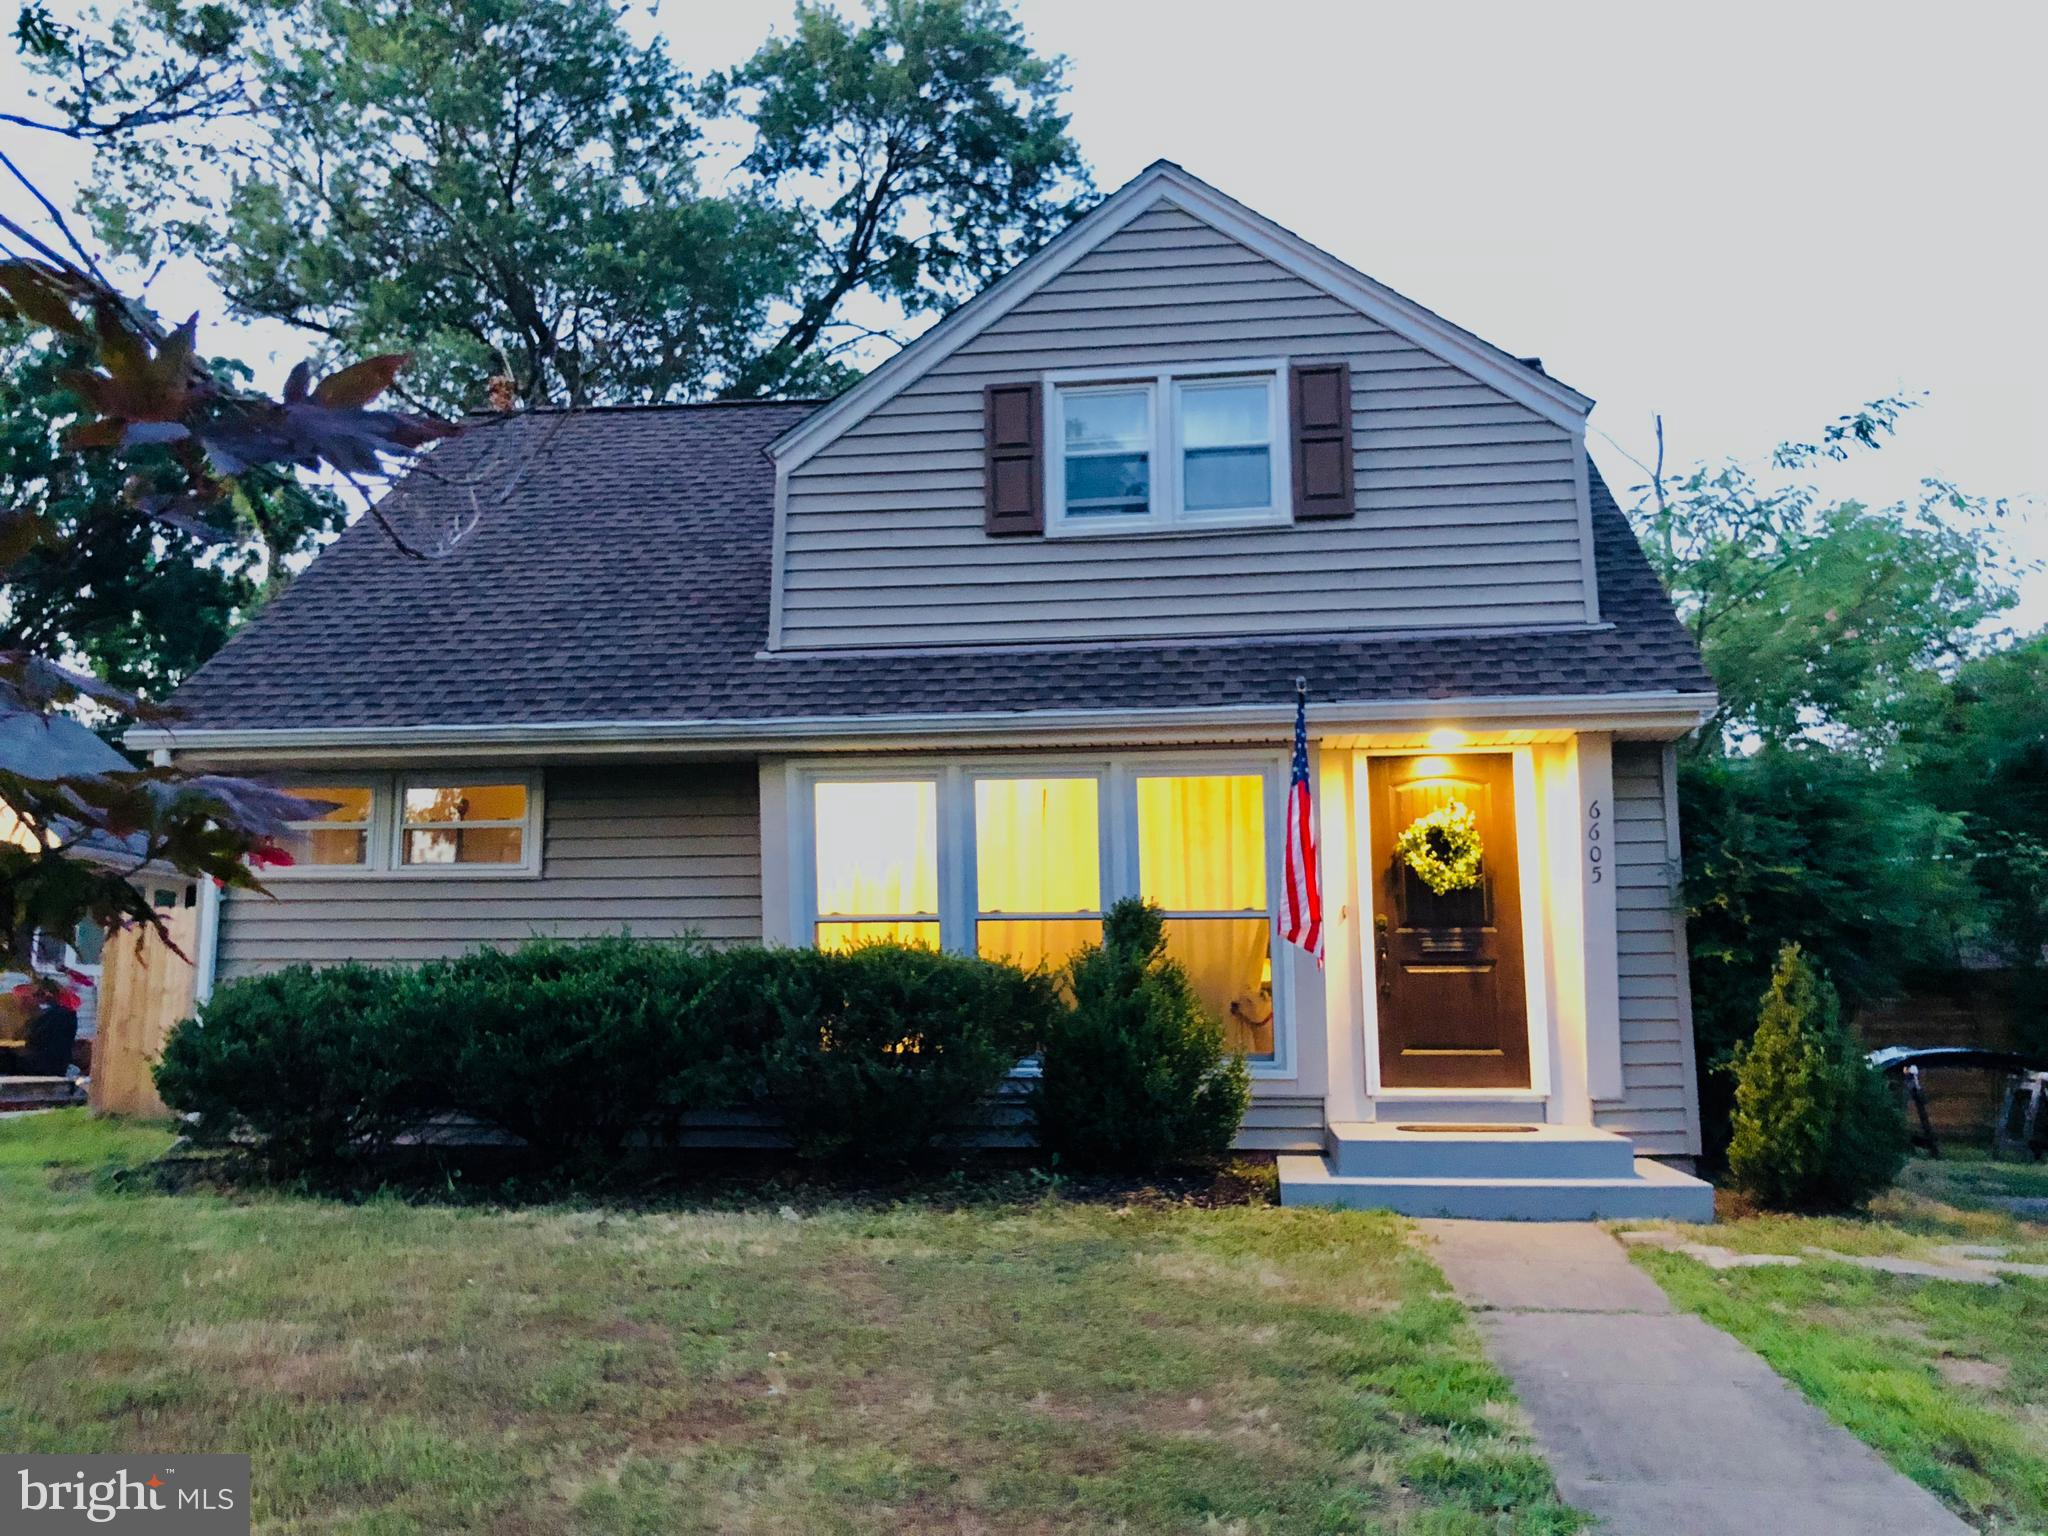 Gorgeous light and bright updated cape cod. 4 brs/2 baths, gourmet kitchen w granite and stainless. Huge living room addition w/vaulted ceilings. Hardwood floors throughout, fresh paint, french doors from living room to deck overlooking rear garden. Walk to Potomac River/Bell Haven. A must see!